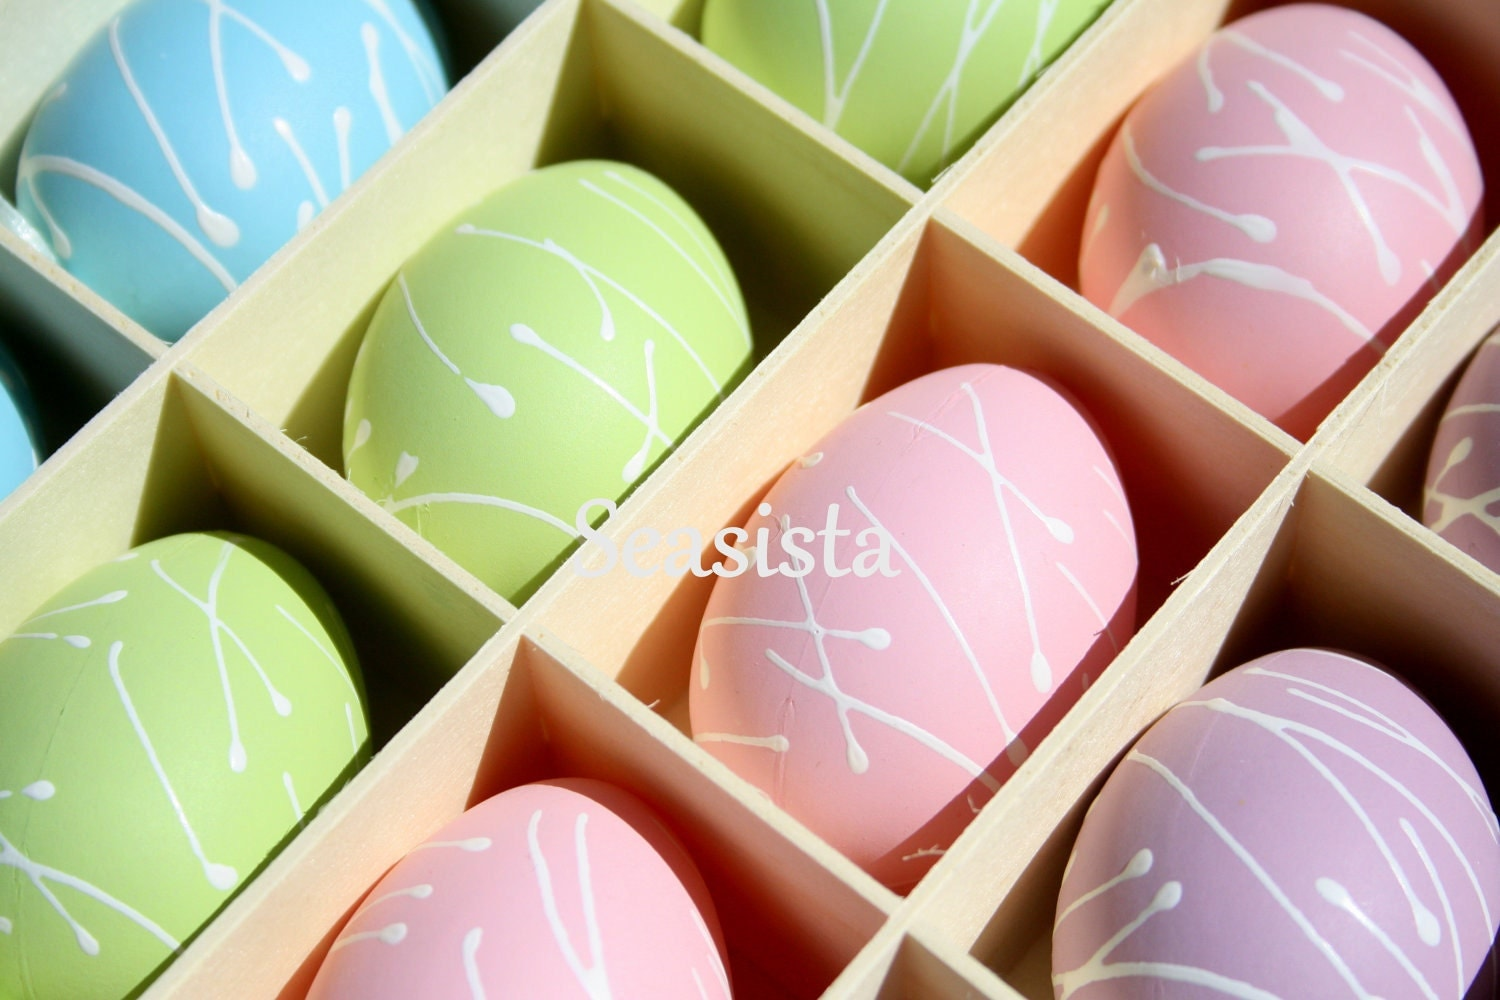 A Box Full of Easter Eggs: Easter Card - seasistaphotography